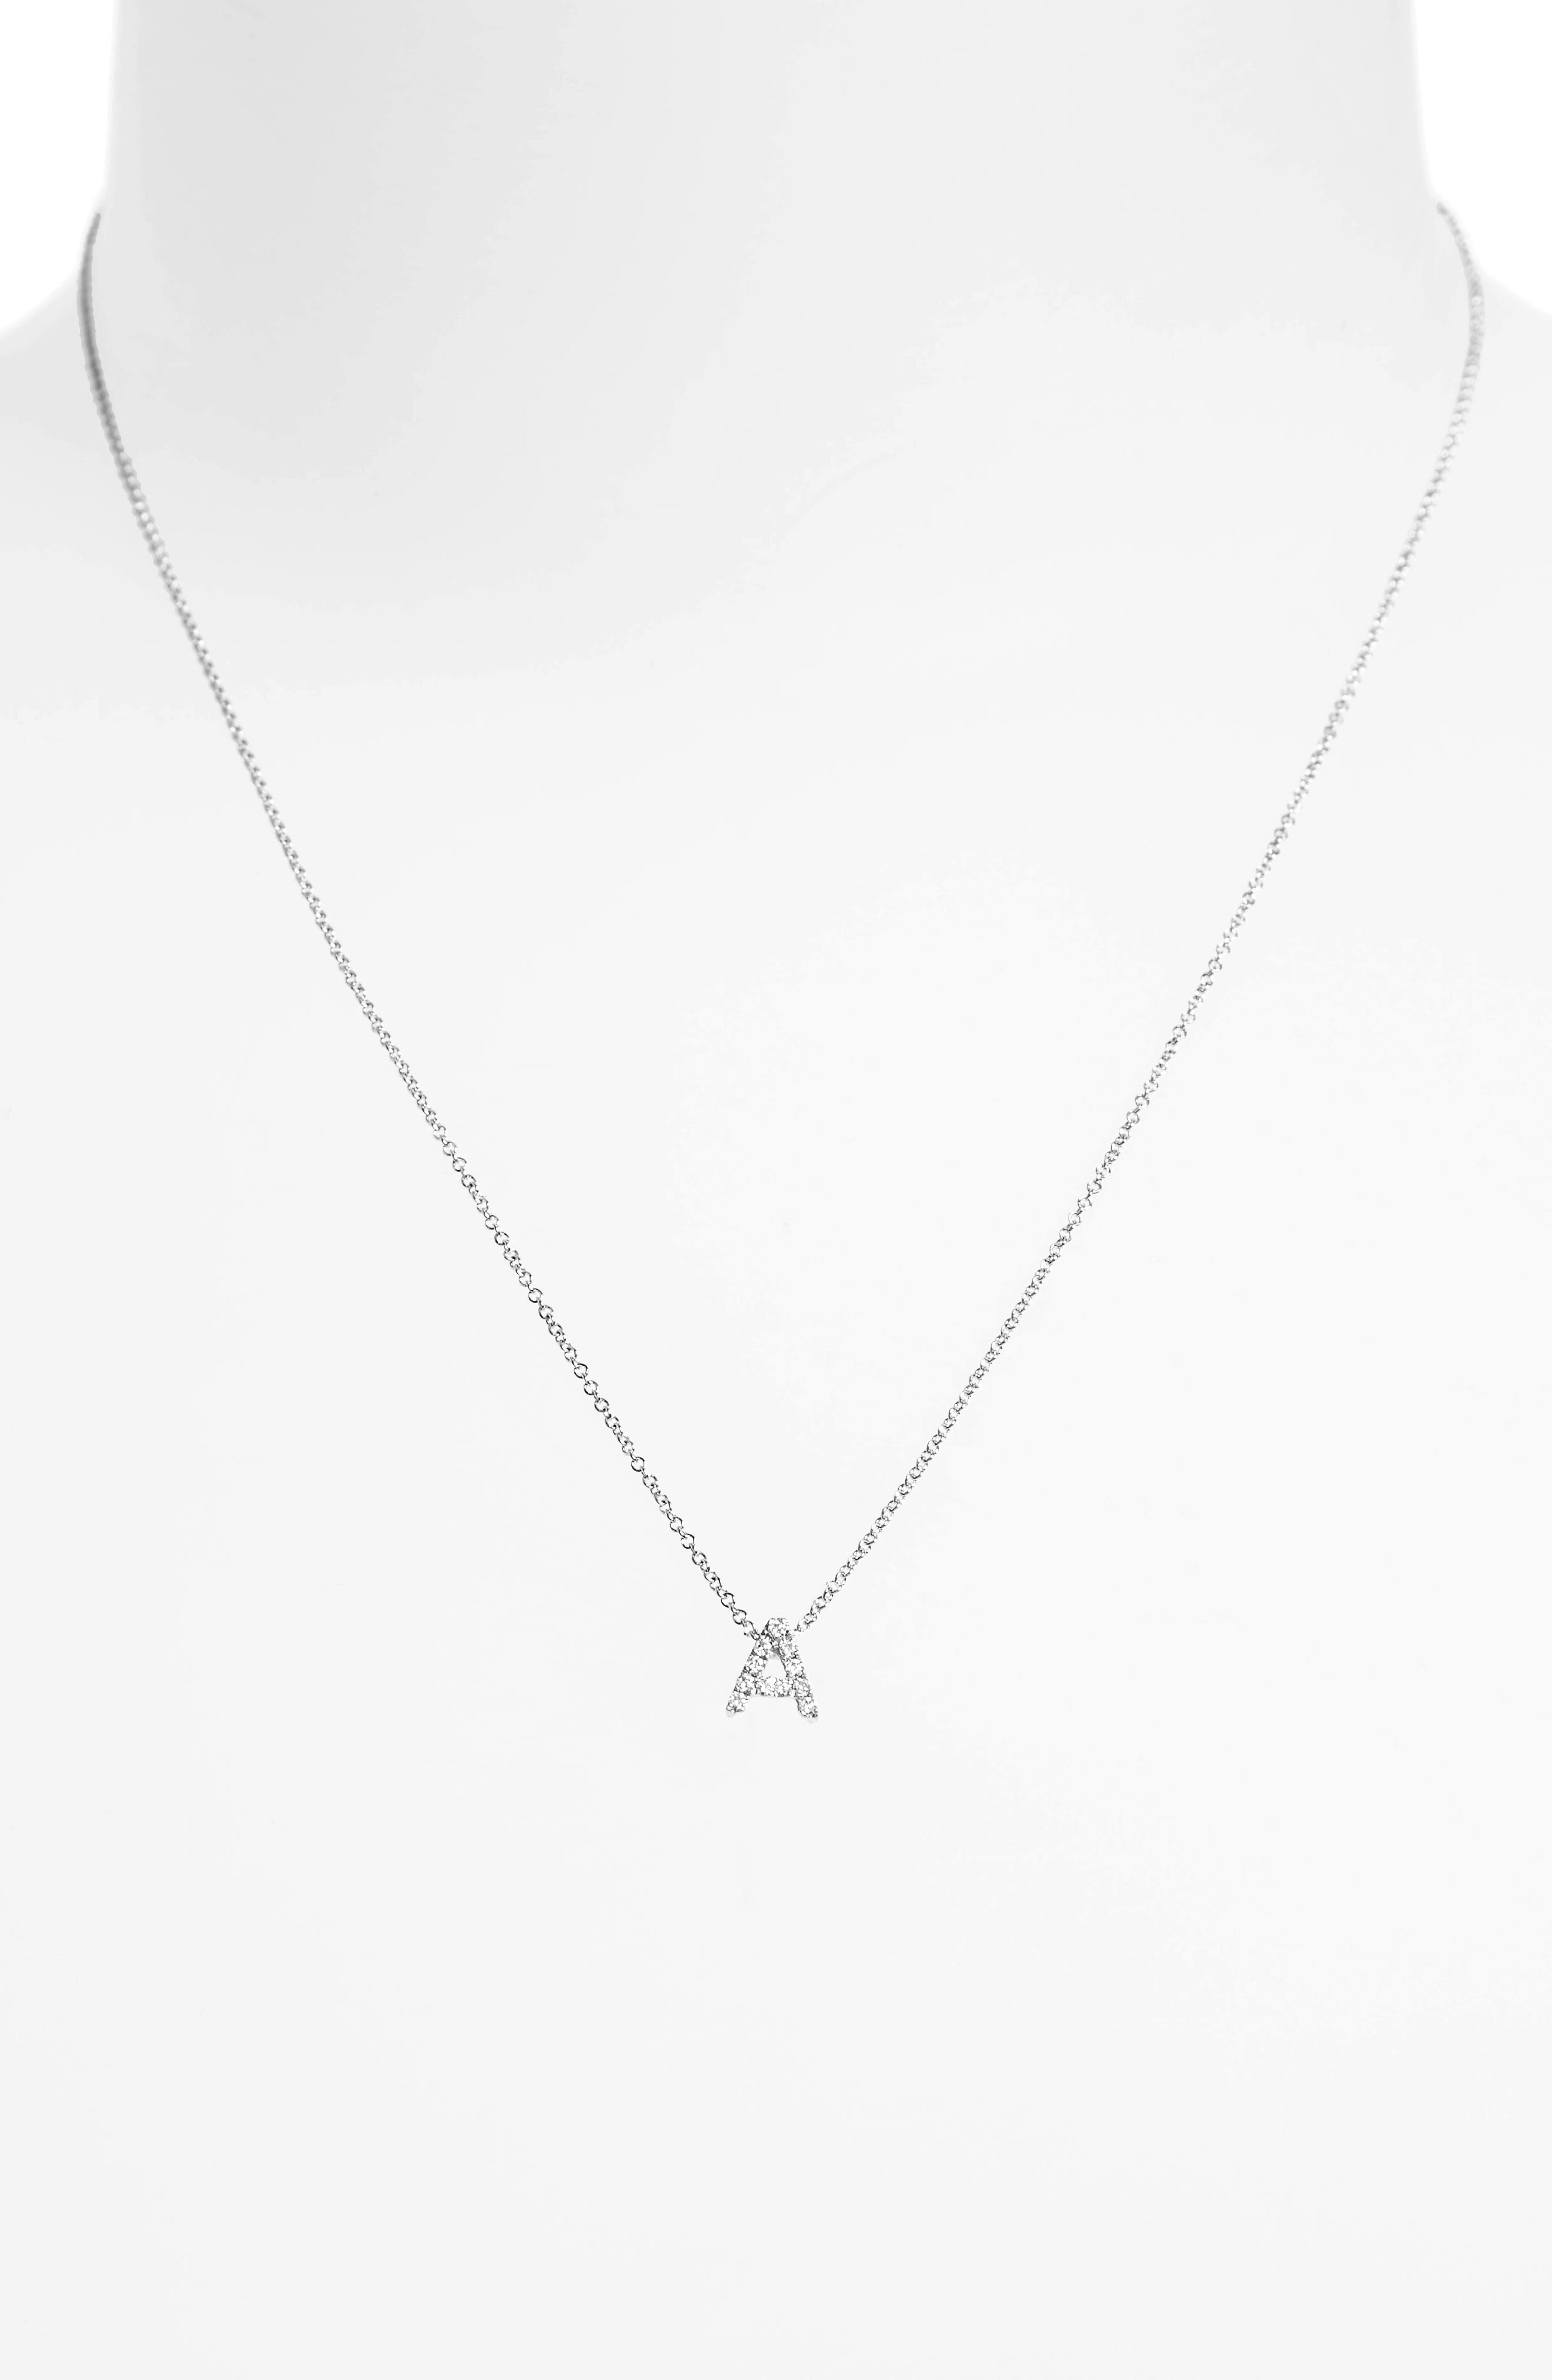 18k Gold Pavé Diamond Initial Pendant Necklace,                             Alternate thumbnail 4, color,                             WHITE GOLD - A